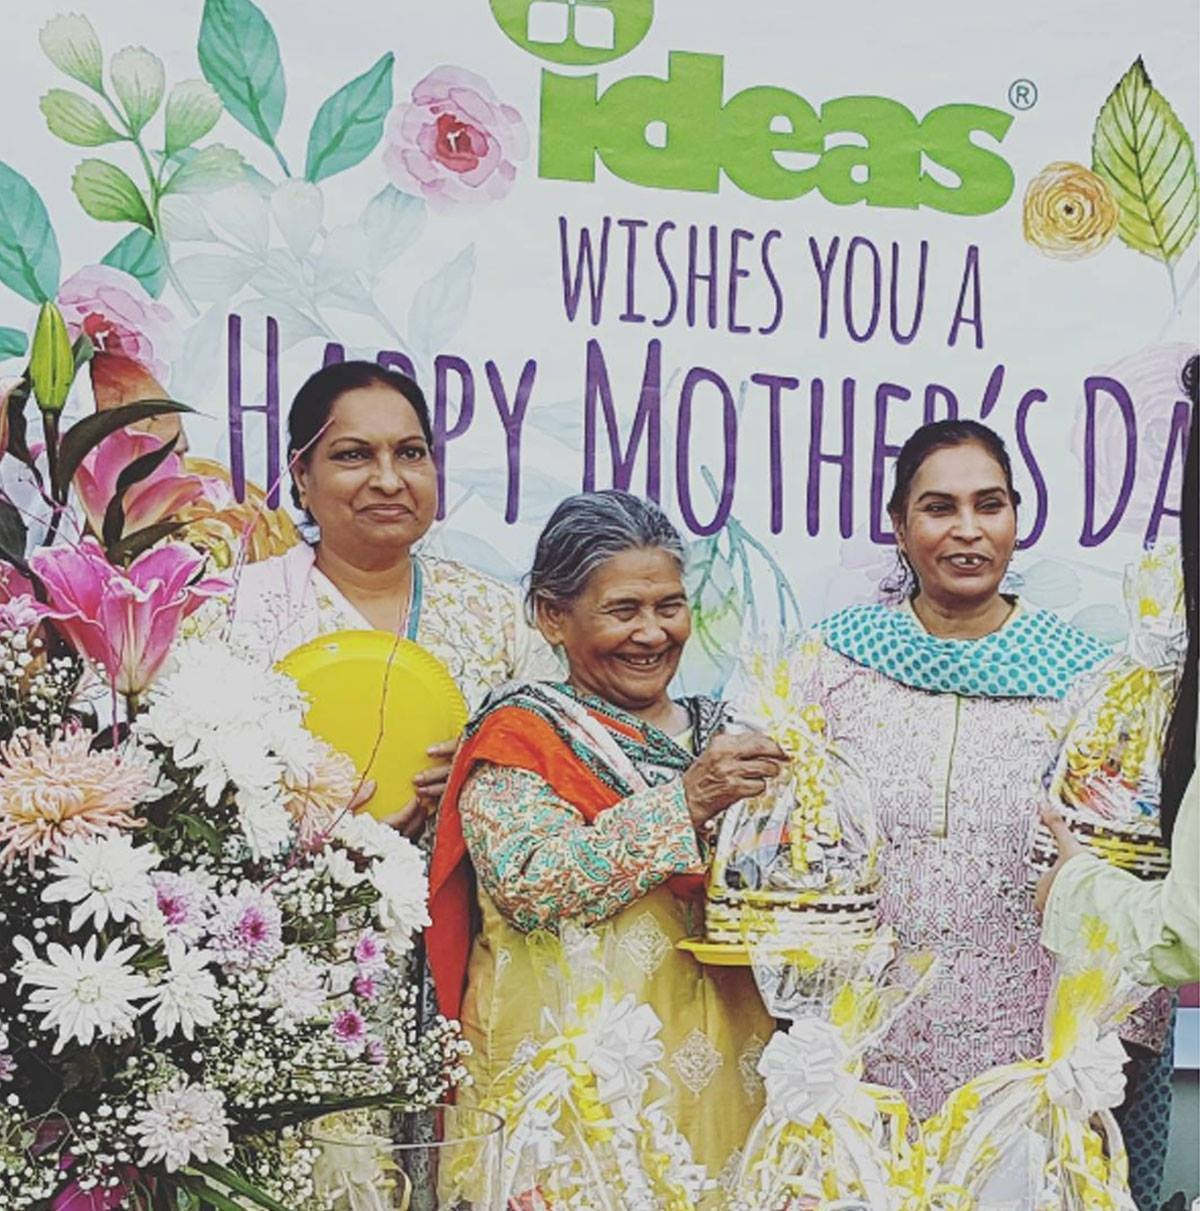 This melted our hearts! #celebratingmomswithideas #mothersdaycelebration #teamideas #ideasforabettertomorrow - Instagram